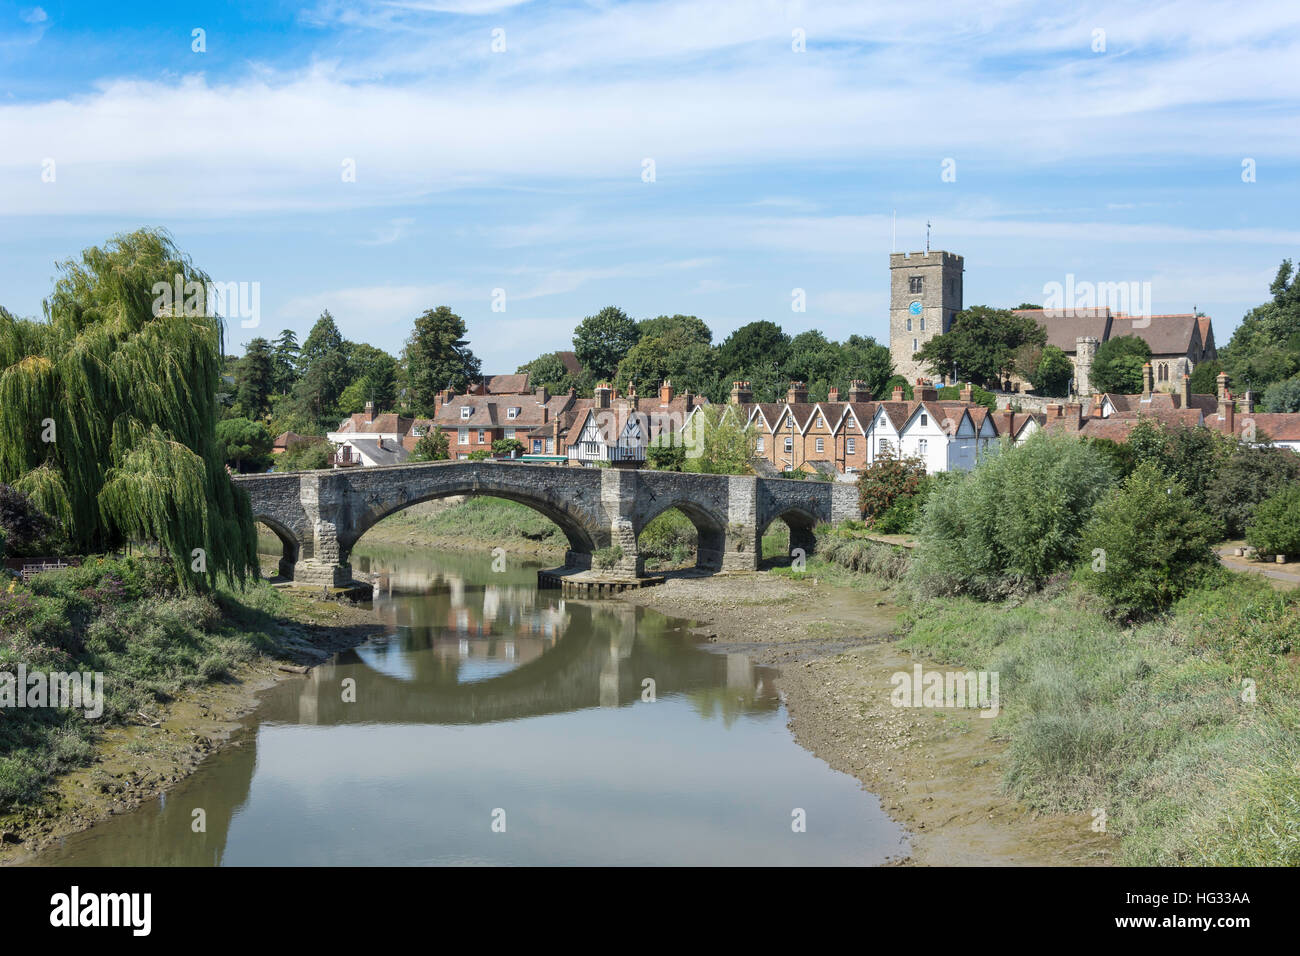 Village view across River Medway, Aylesford, Kent, England, United Kingdom - Stock Image